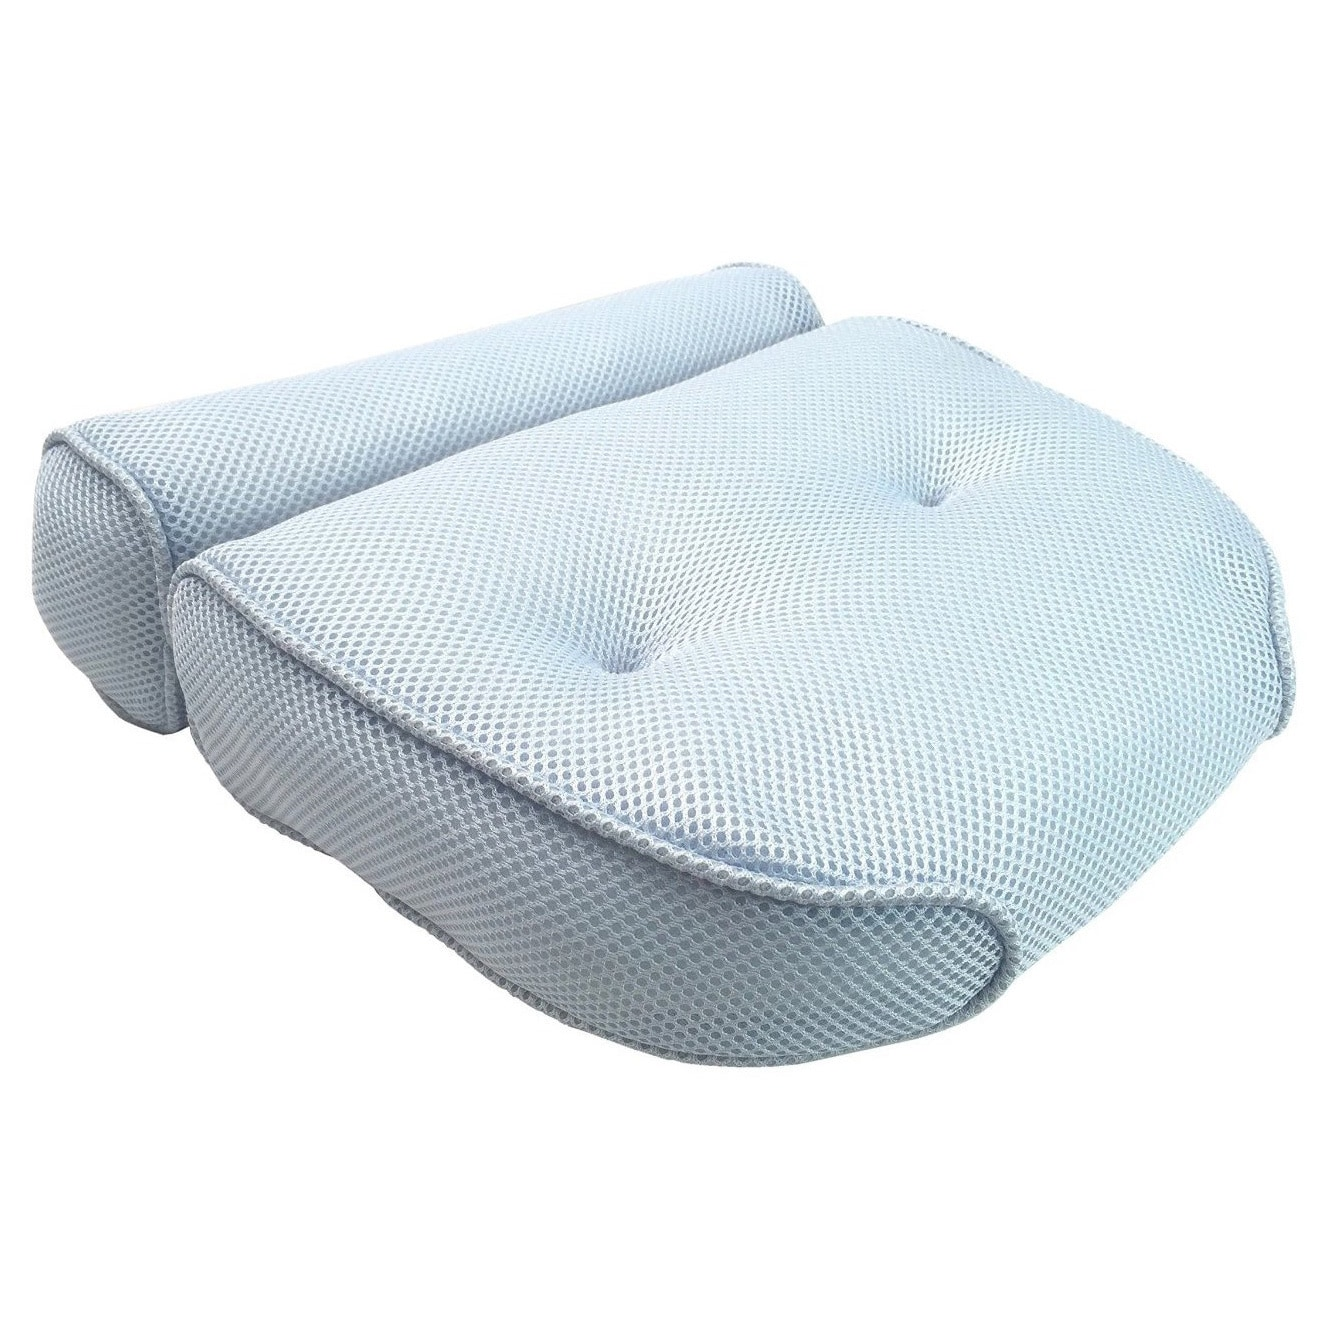 Shop Home Spa Luxury Bolster Bath Pillow - On Sale - Free Shipping ...